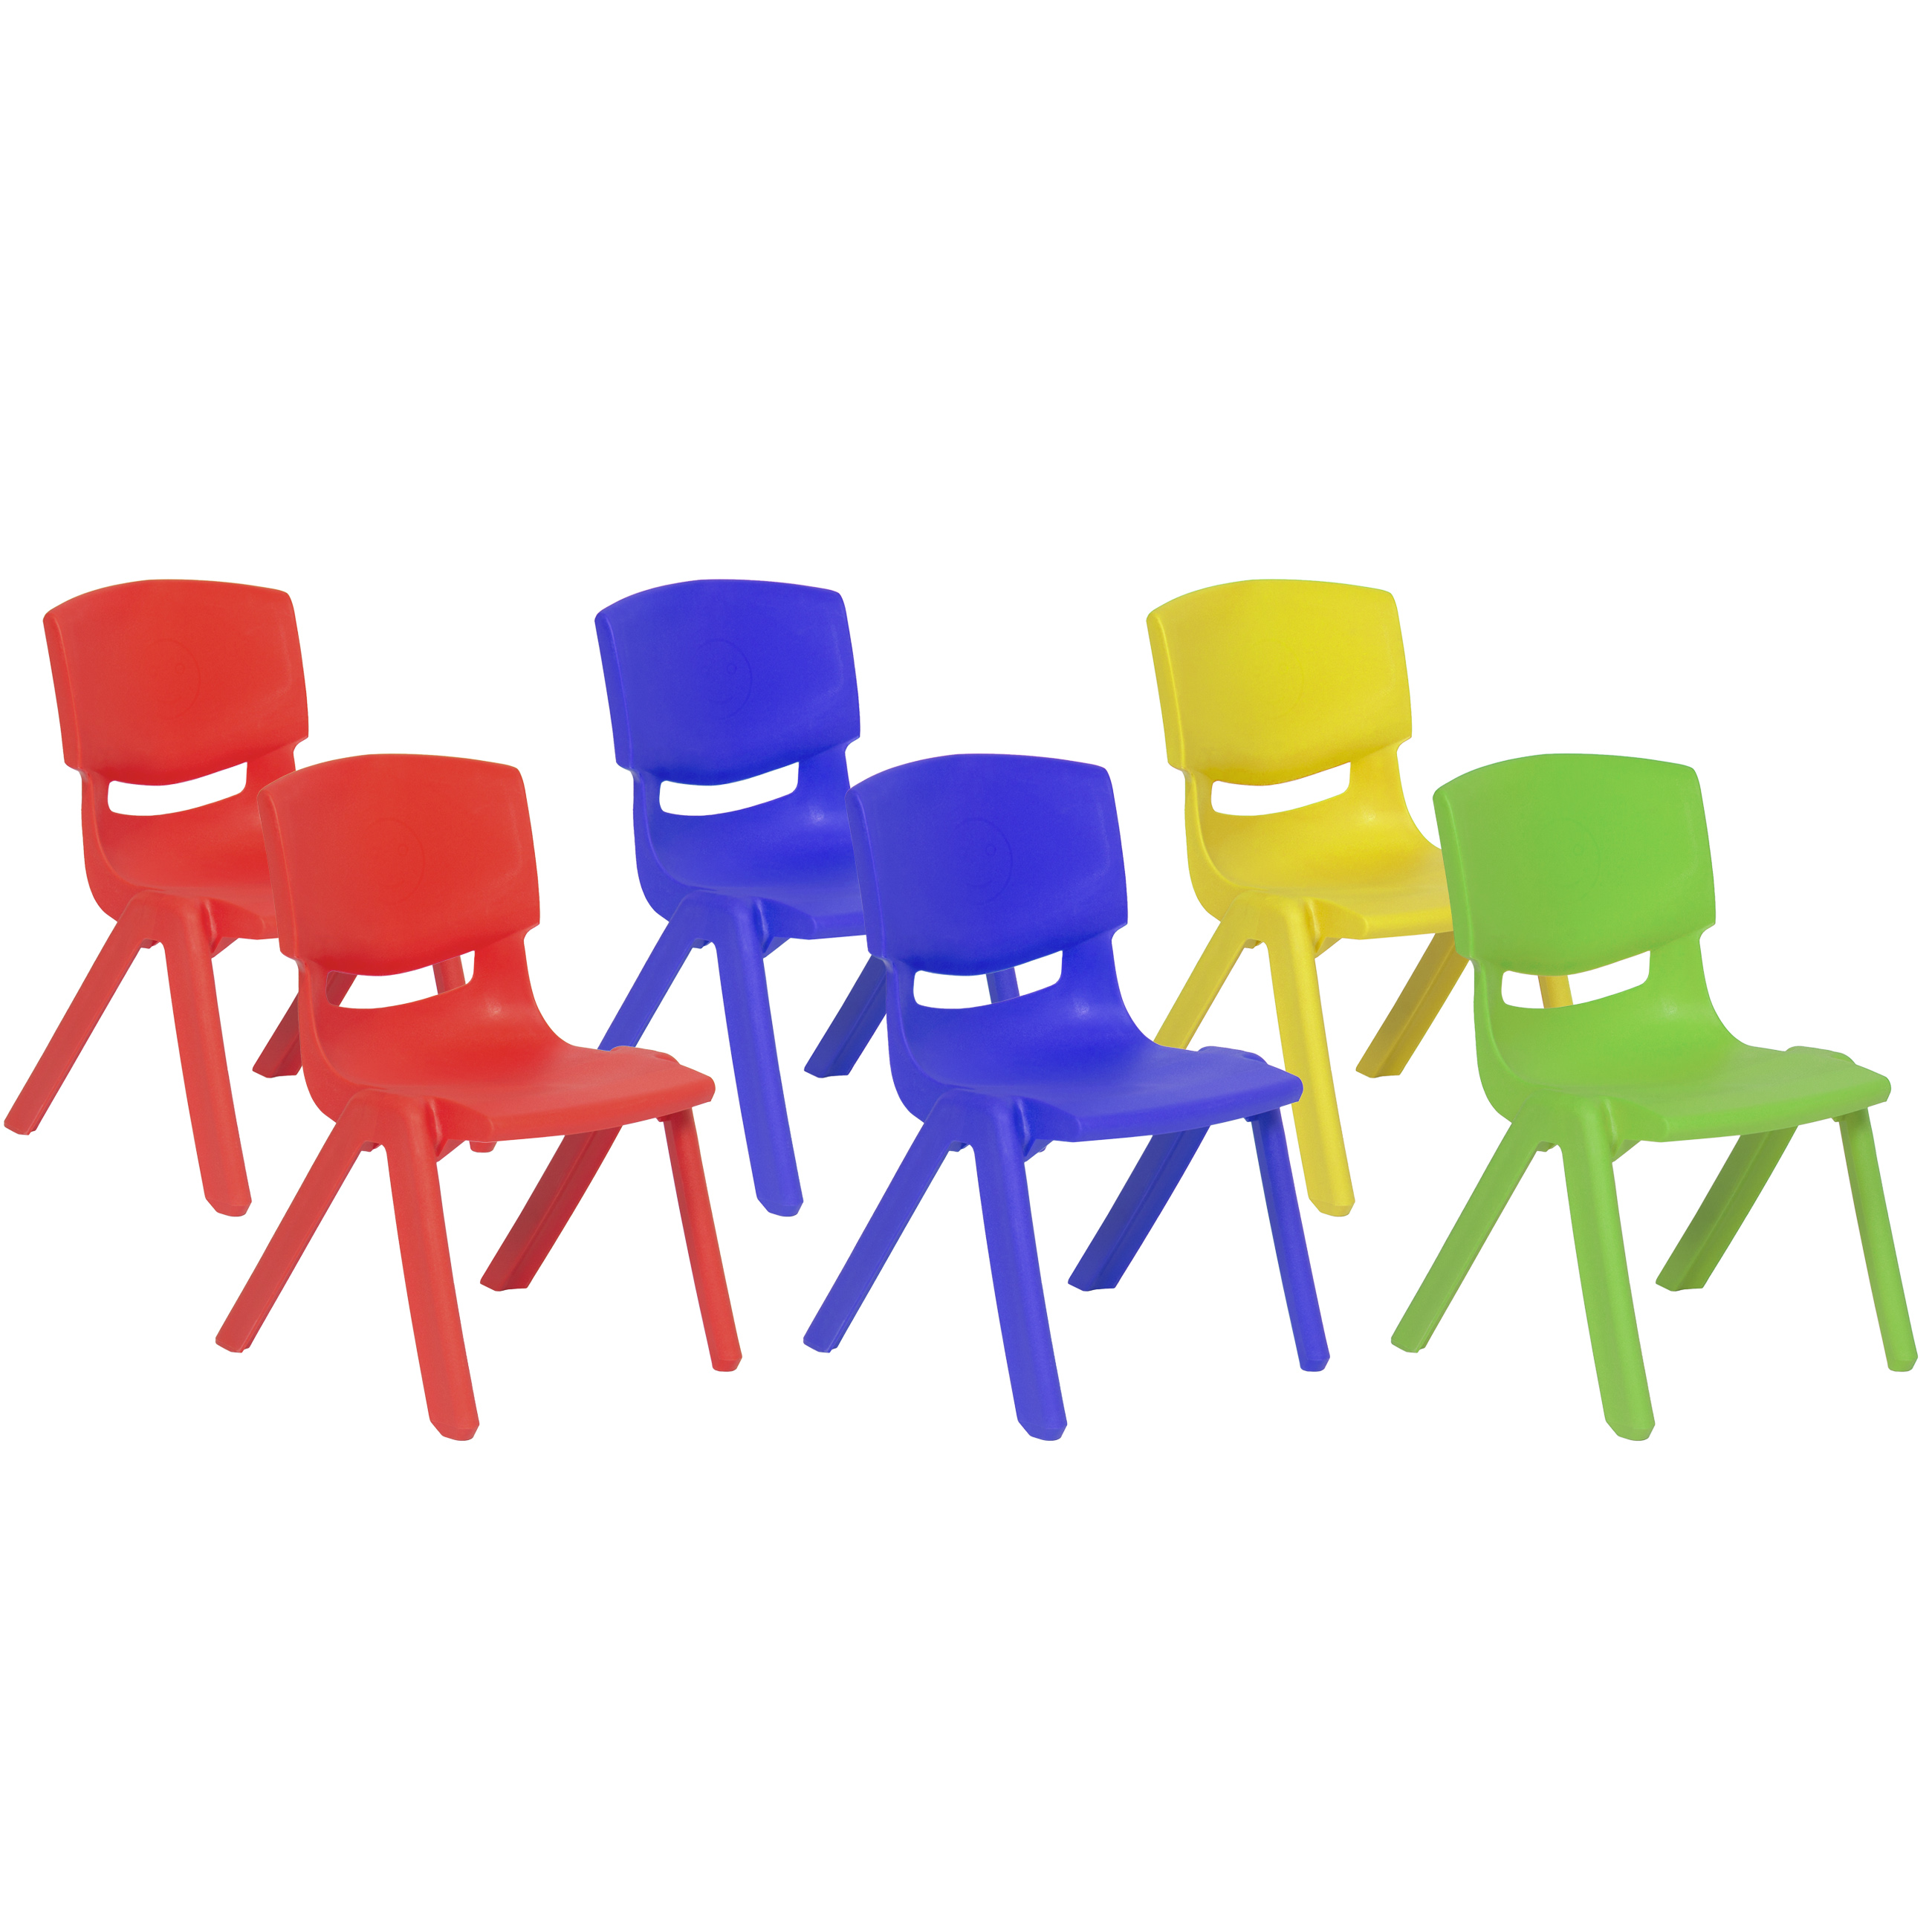 "Best Choice Products (6) 10"" Plastic Stacking School Chairs Multicolor"